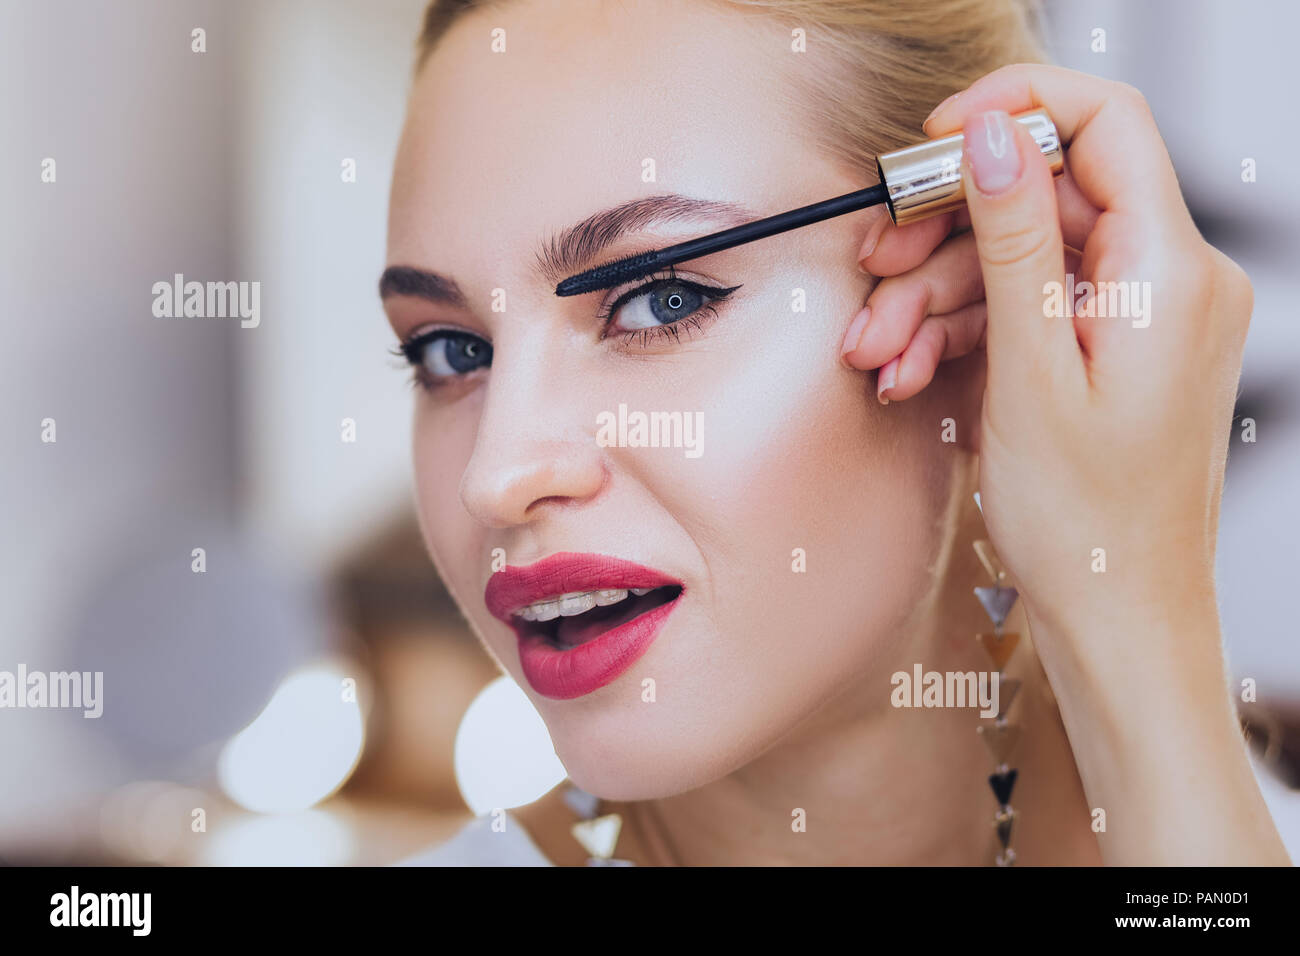 Blonde-haired woman with dental brackets coloring her eyelashes ...